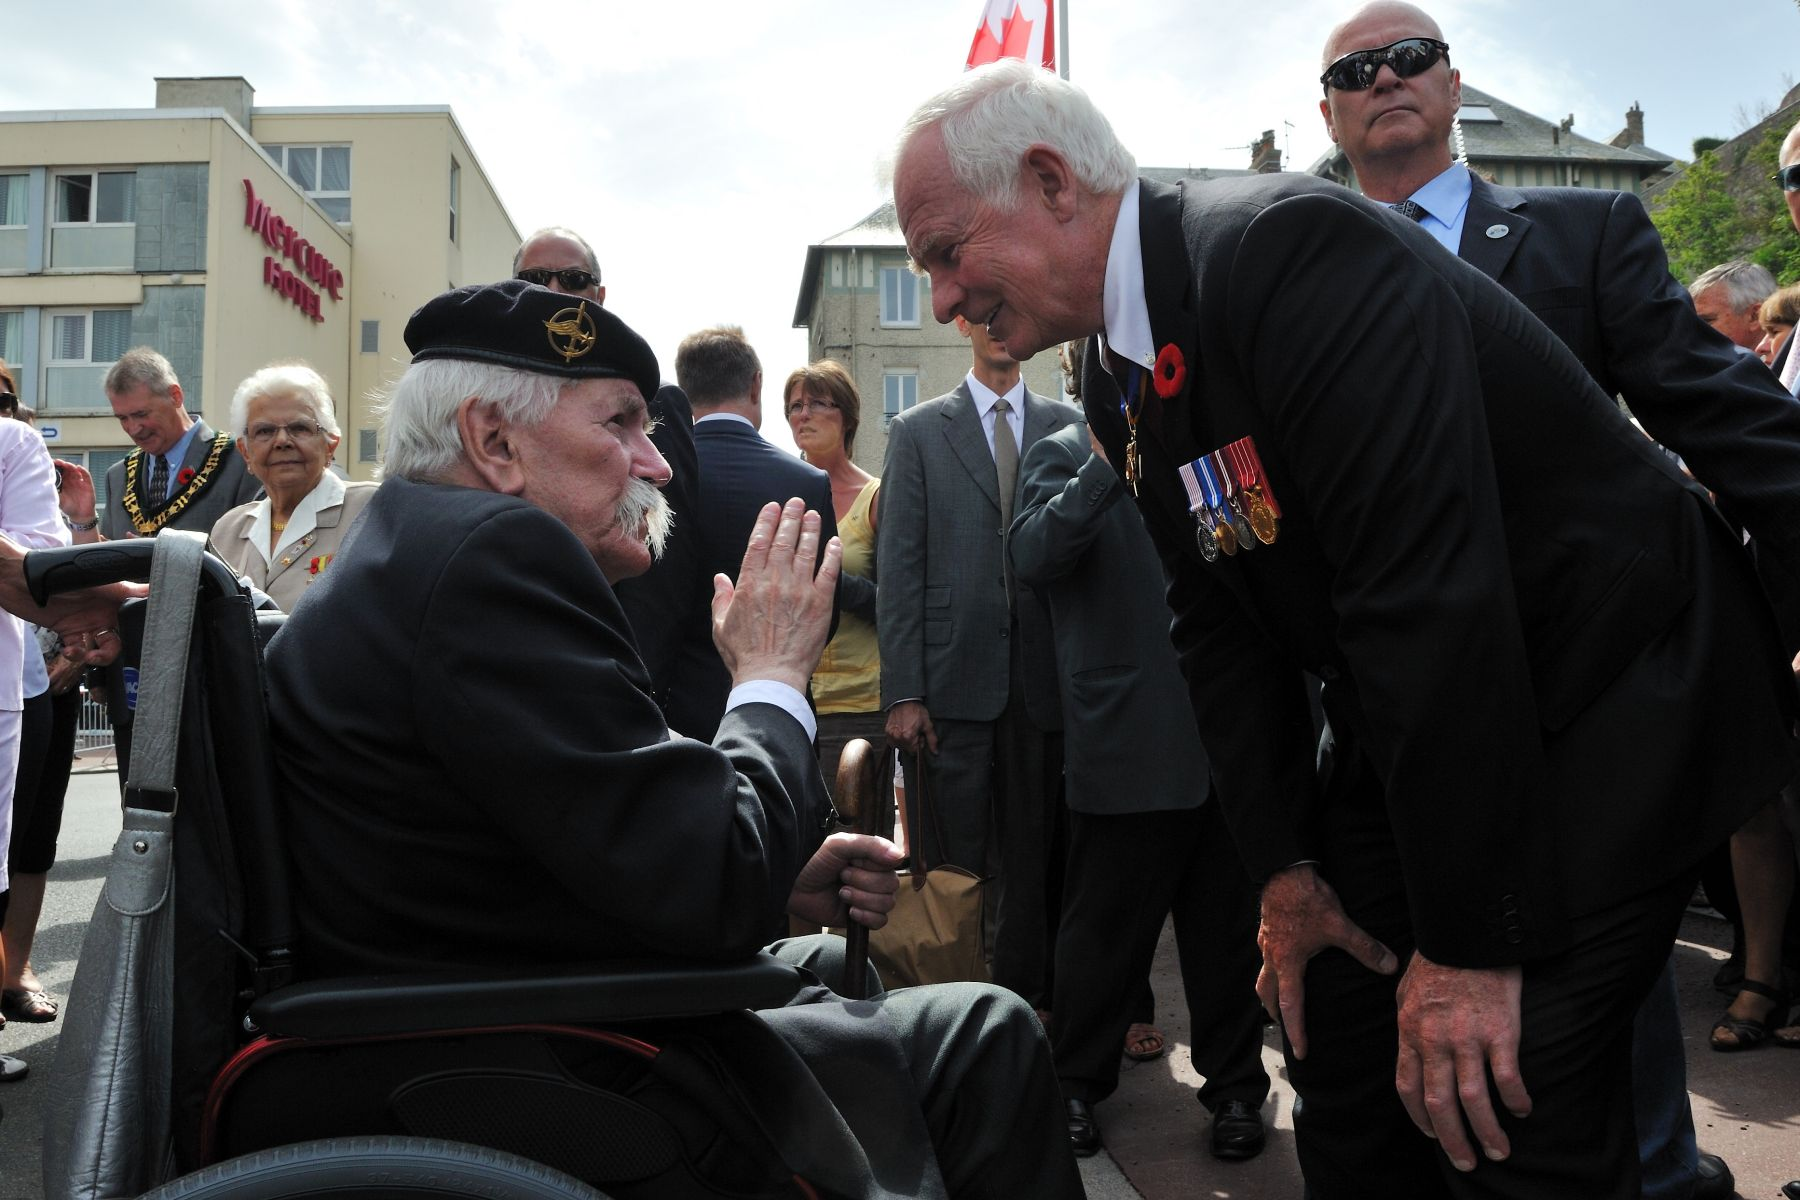 The Governor General took the time to speak to veterans that attended the event.